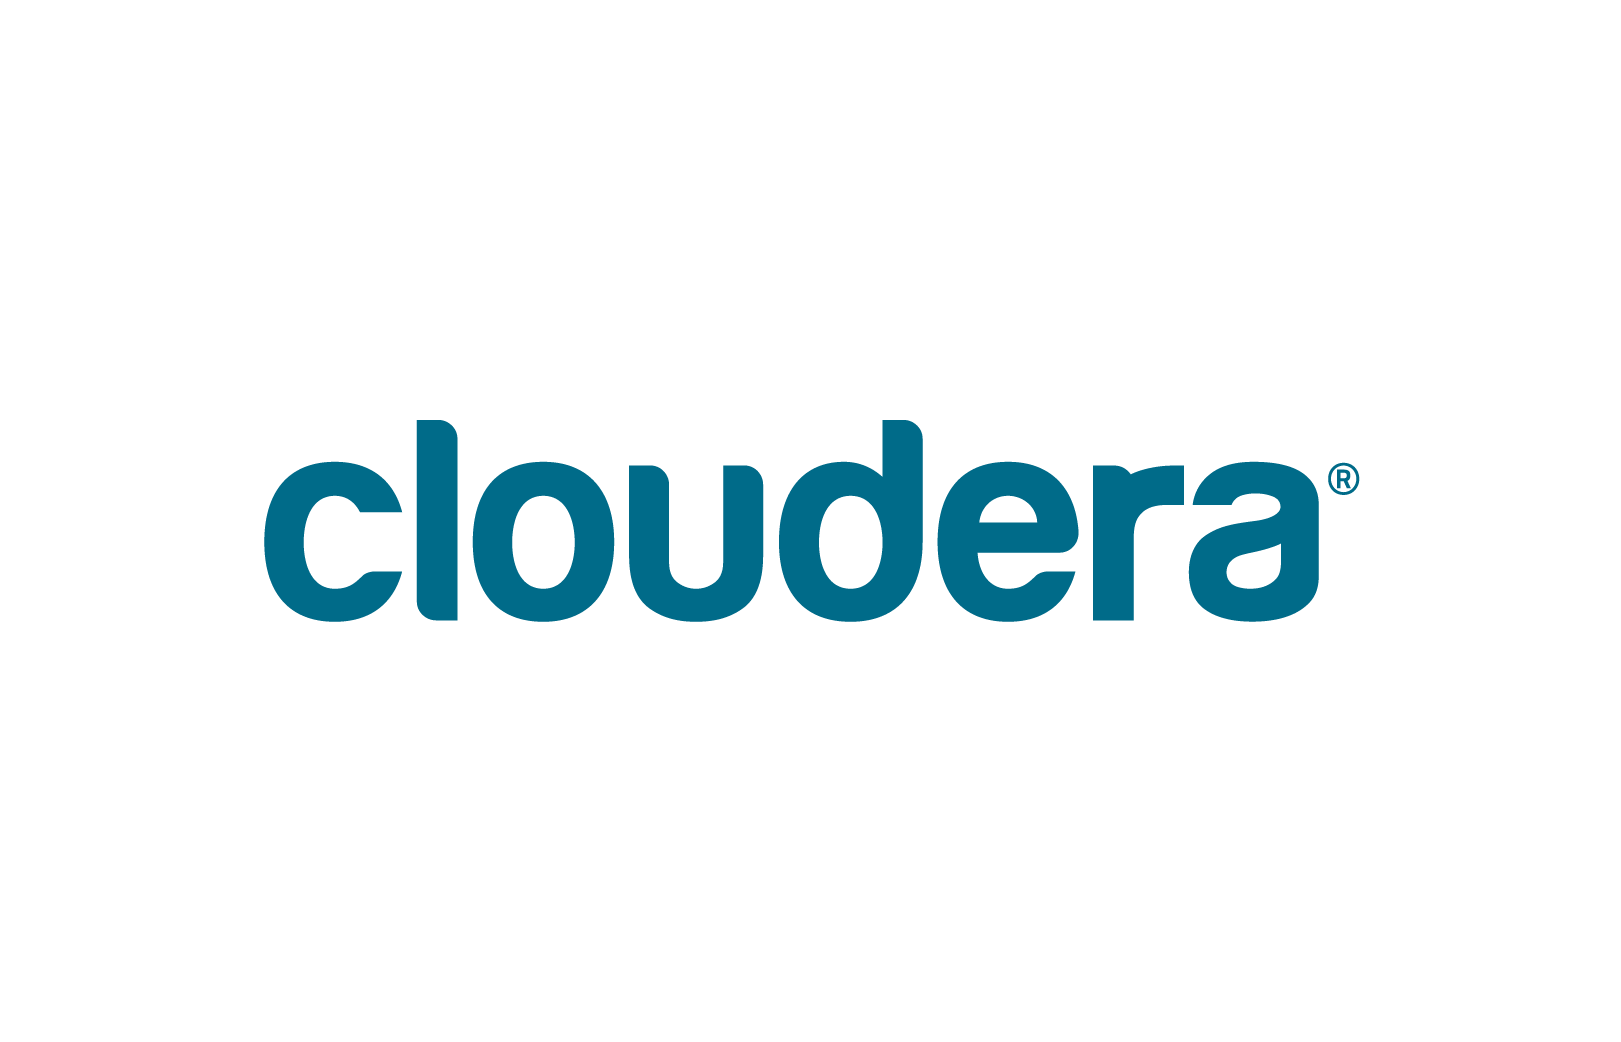 cloudera big data london